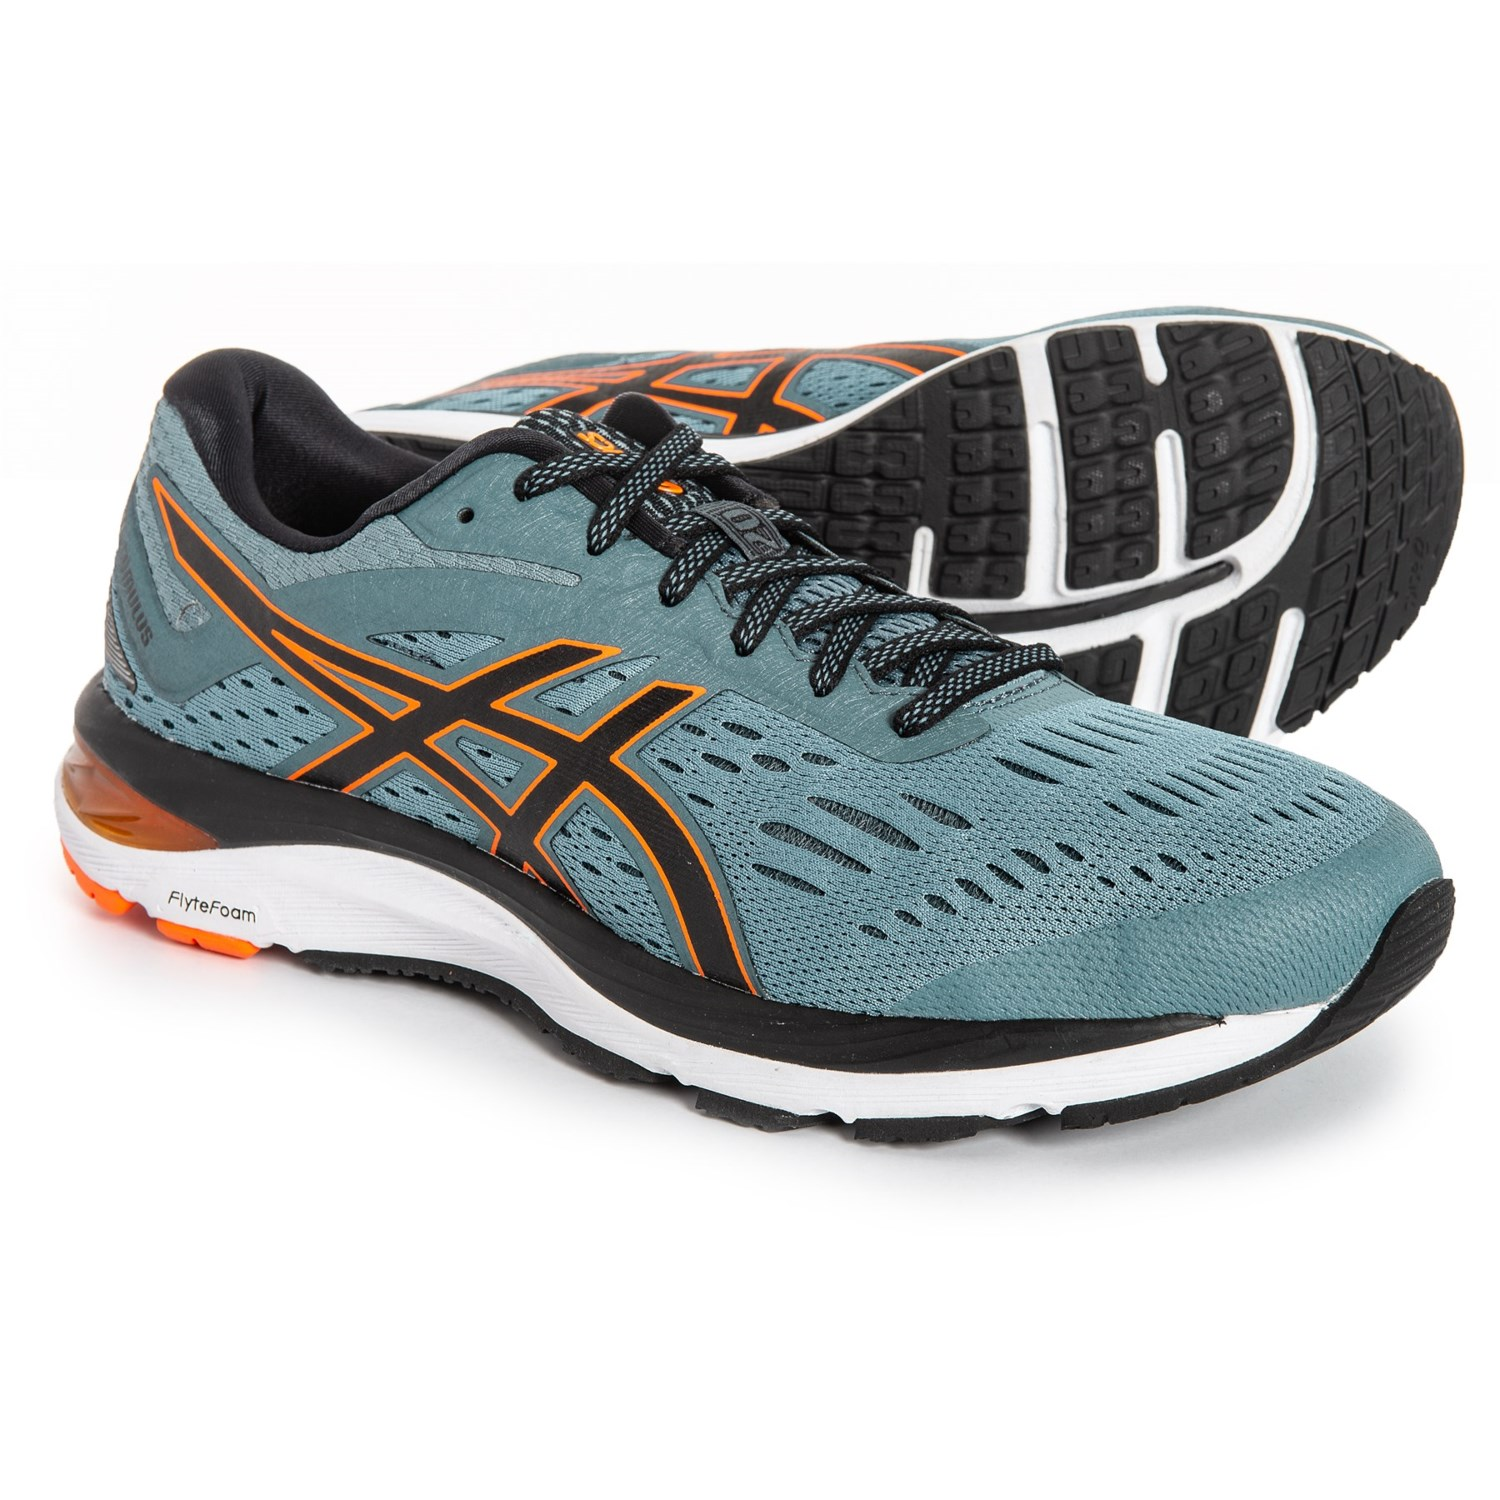 énorme réduction 86aaa b6f56 ASICS Gel-Cumulus 20 Running Shoes (For Men)